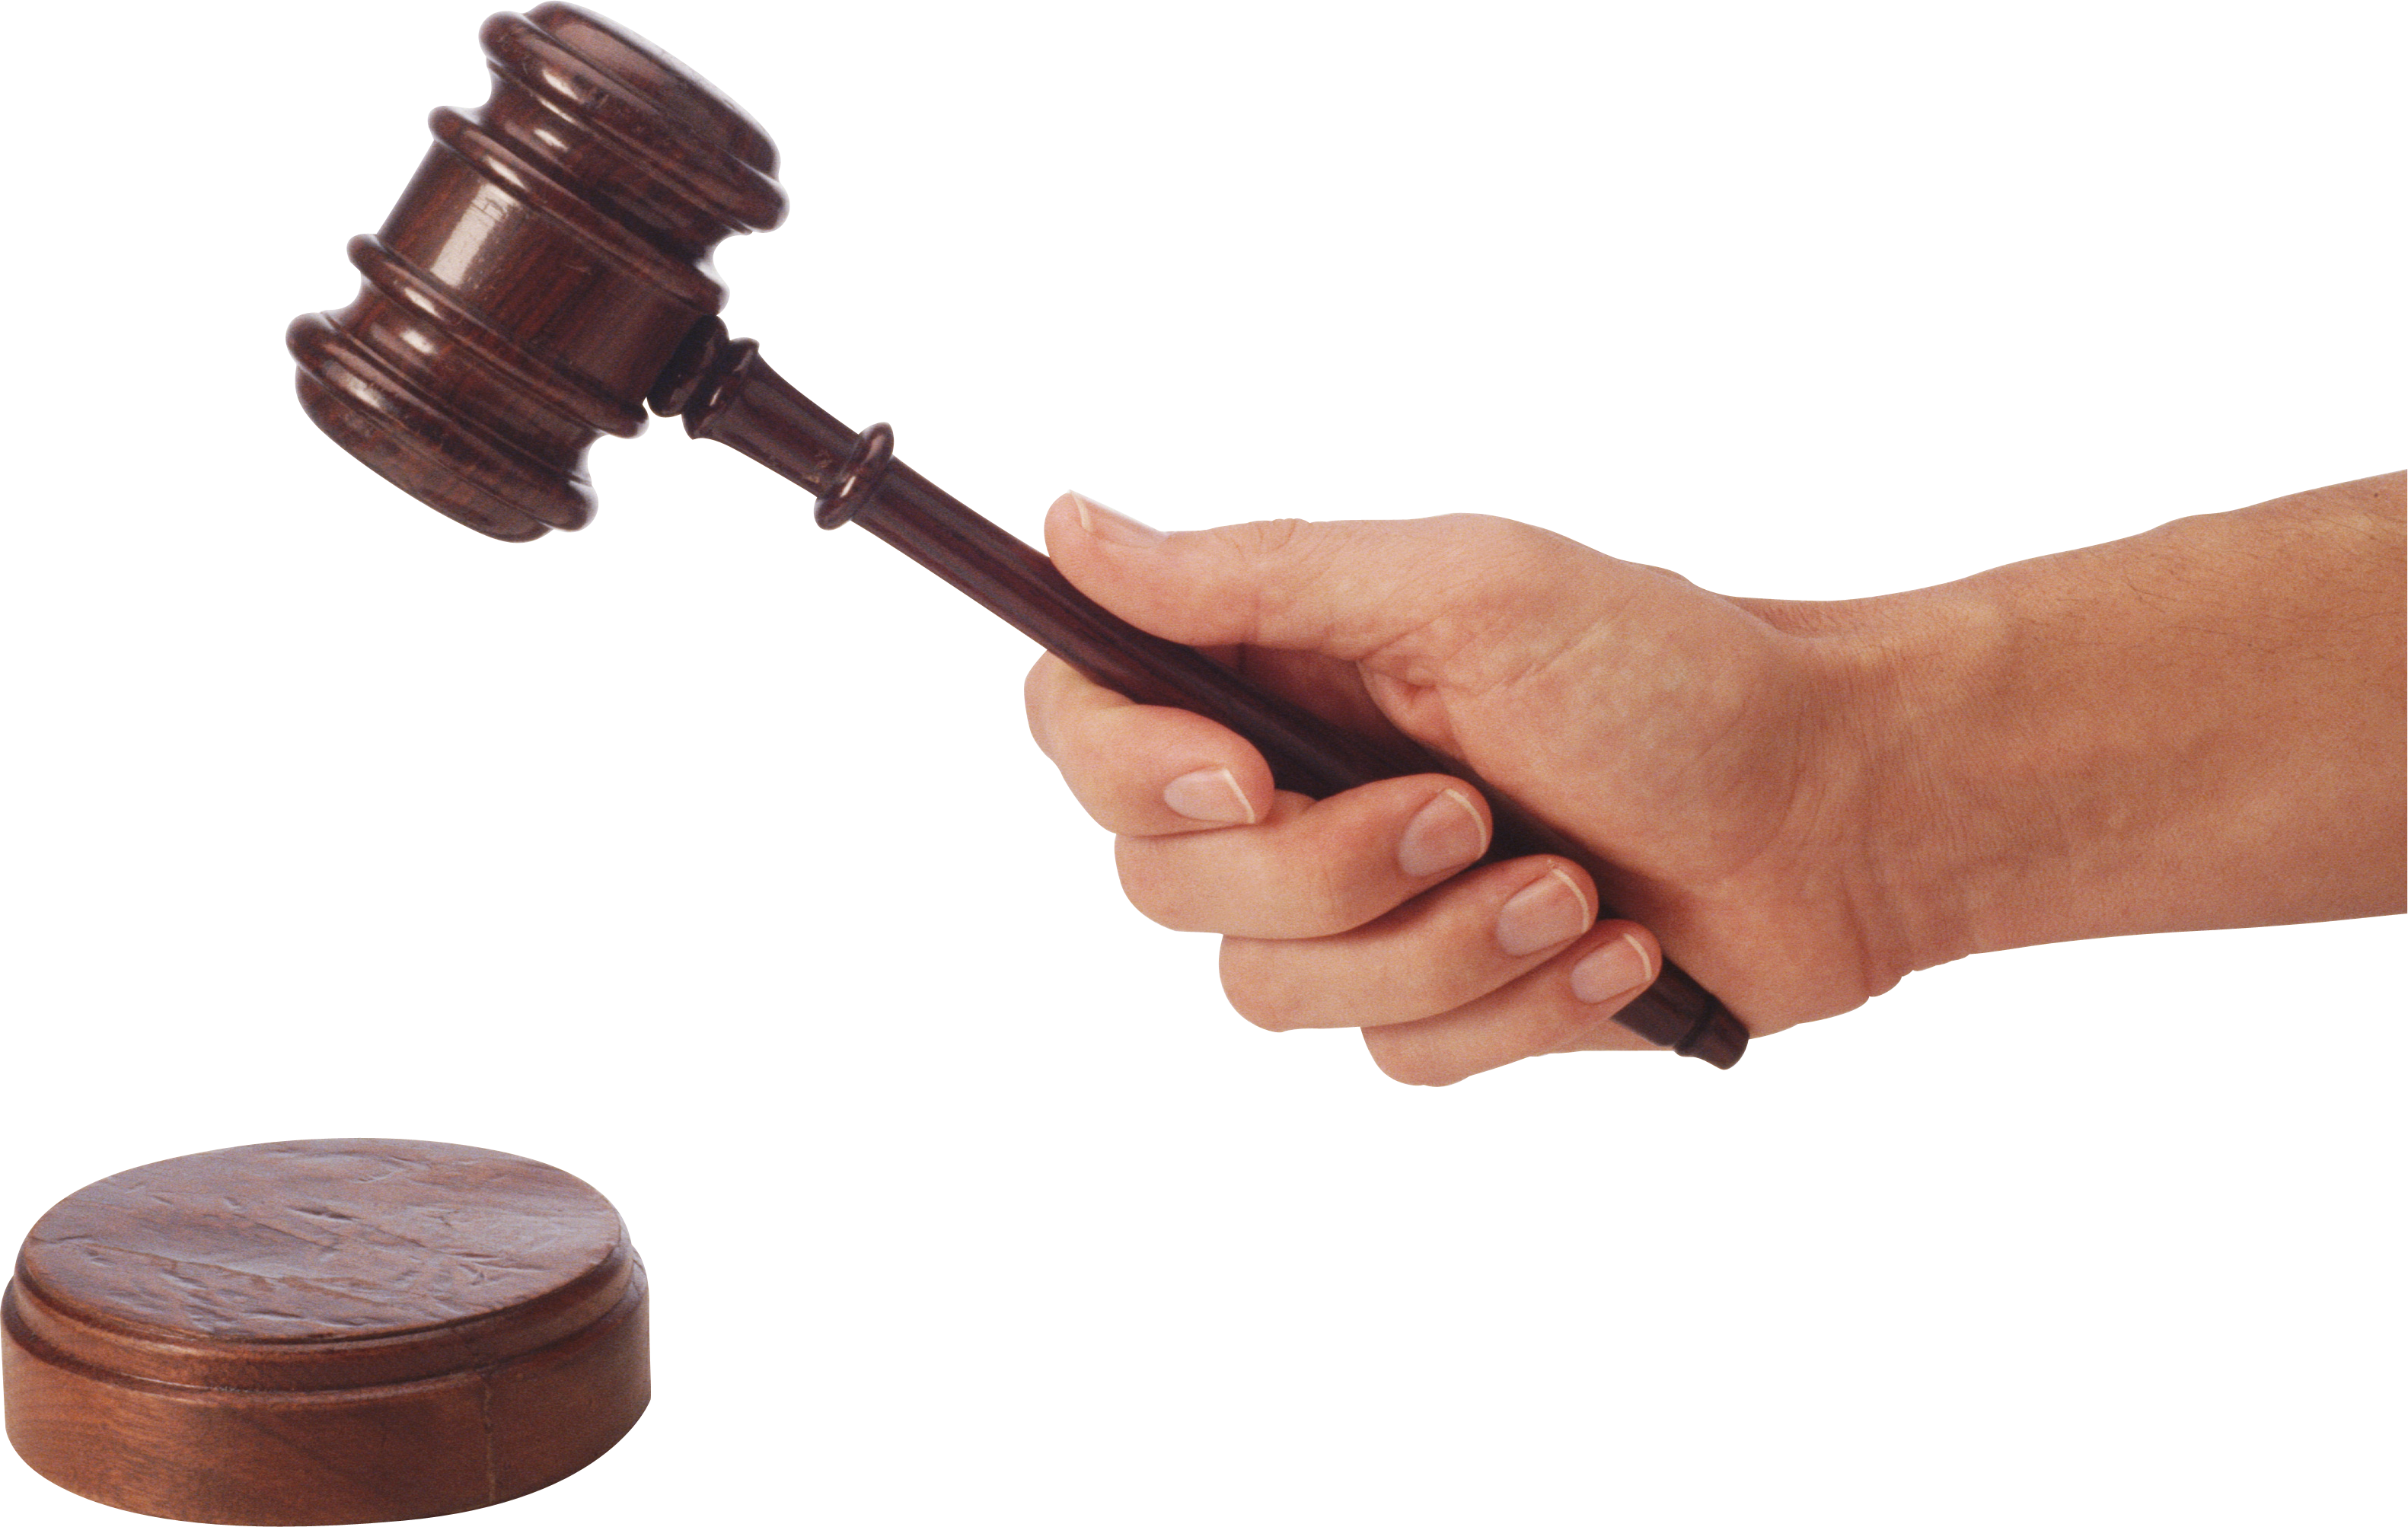 Gavel Judge Hammer in hand PNG Image.